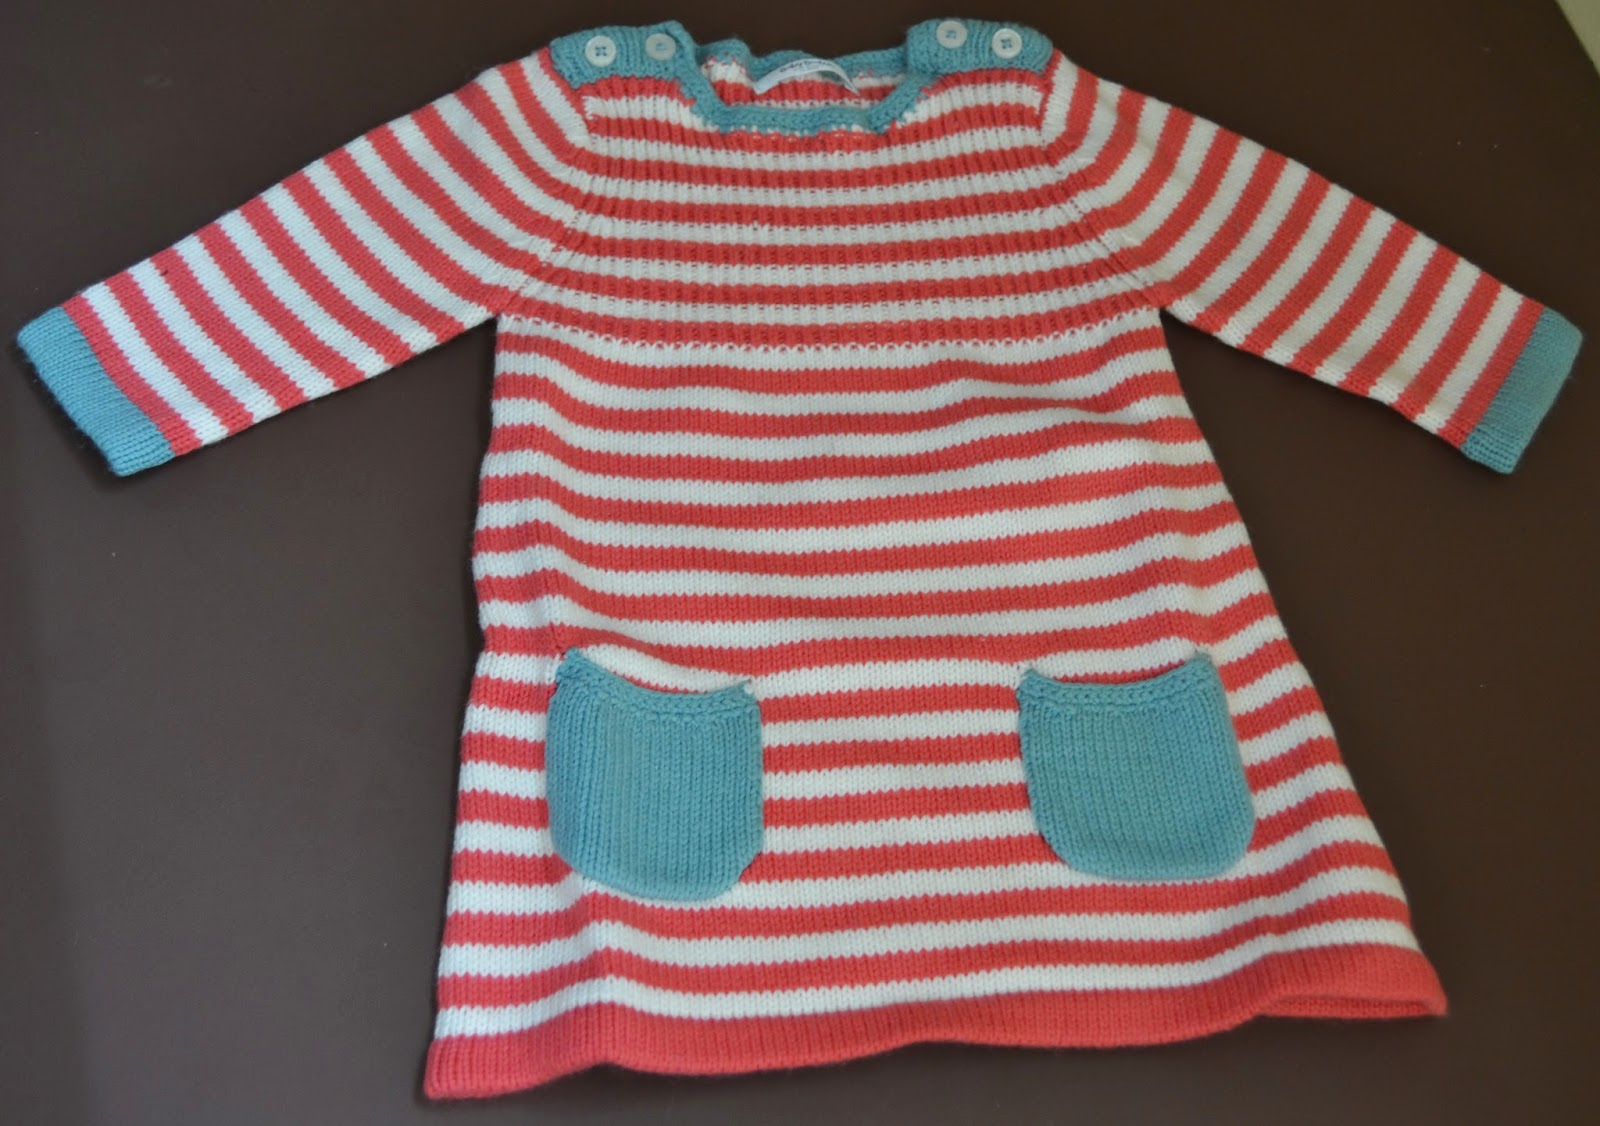 Mini Boden Review The Nutritionist Reviews